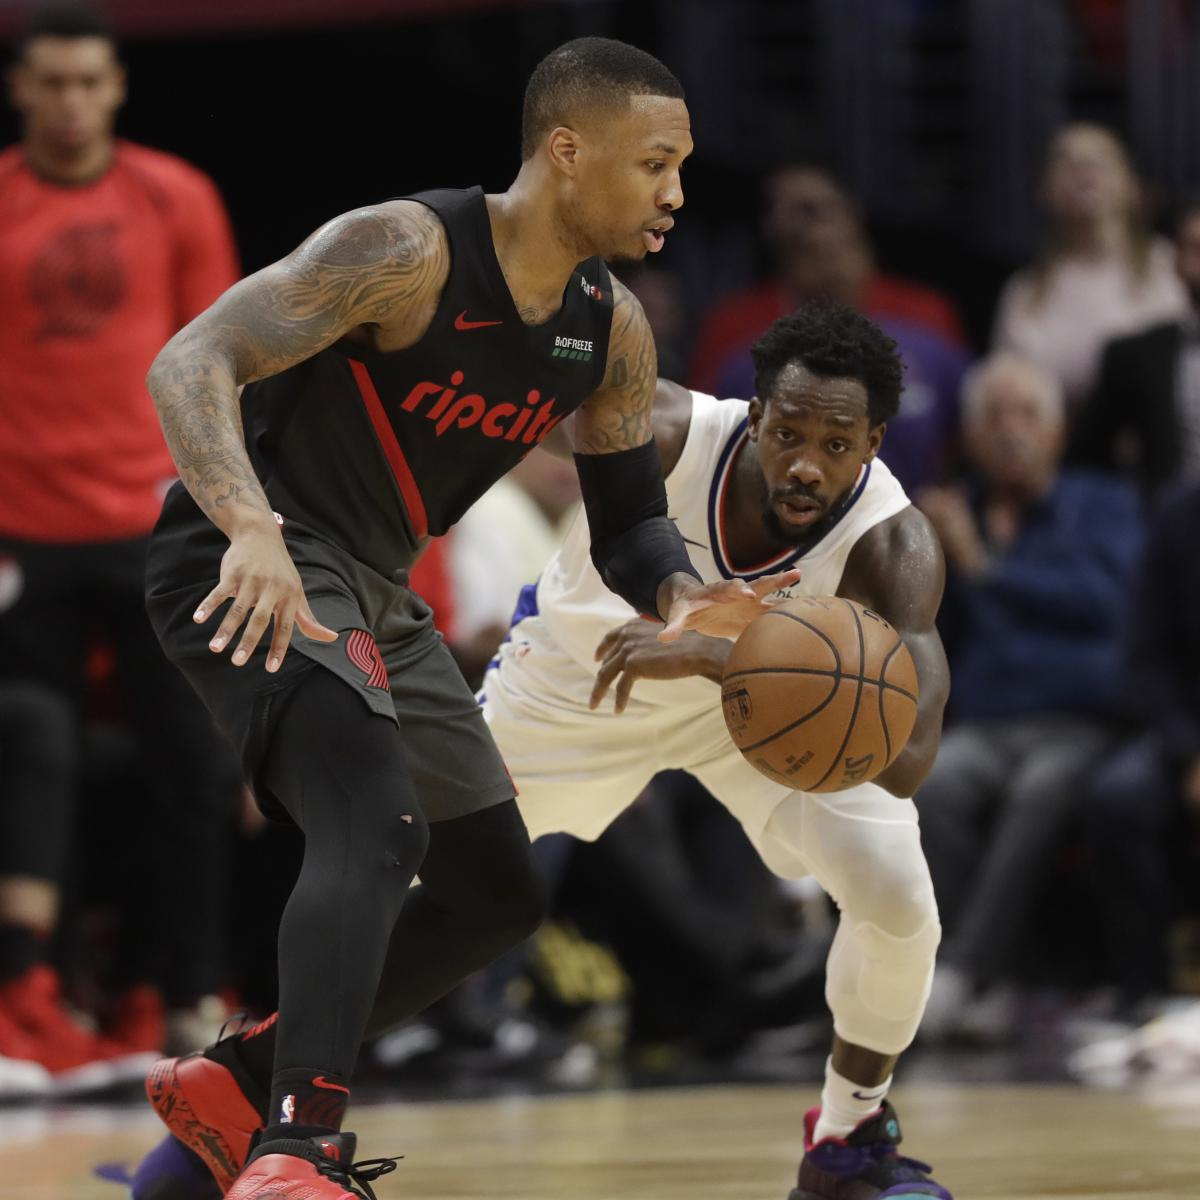 Damian Lillard Trolls Pat Beverley with Vacation Offer After Clippers Loss thumbnail